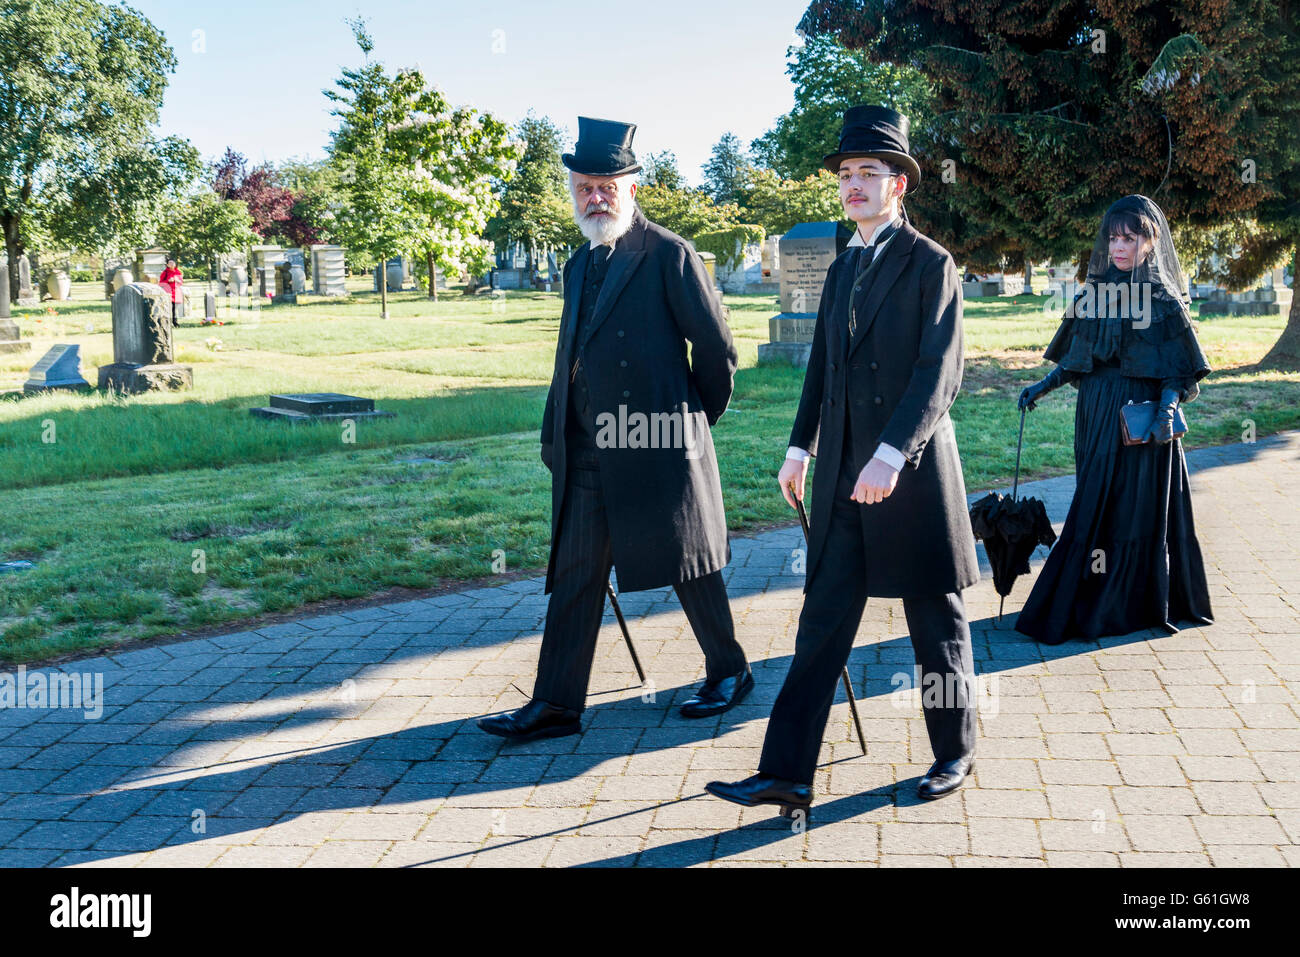 Mourners in traditional black costume, Mountain View Cemetery, Vancouver, British Columbia, Canada, - Stock Image